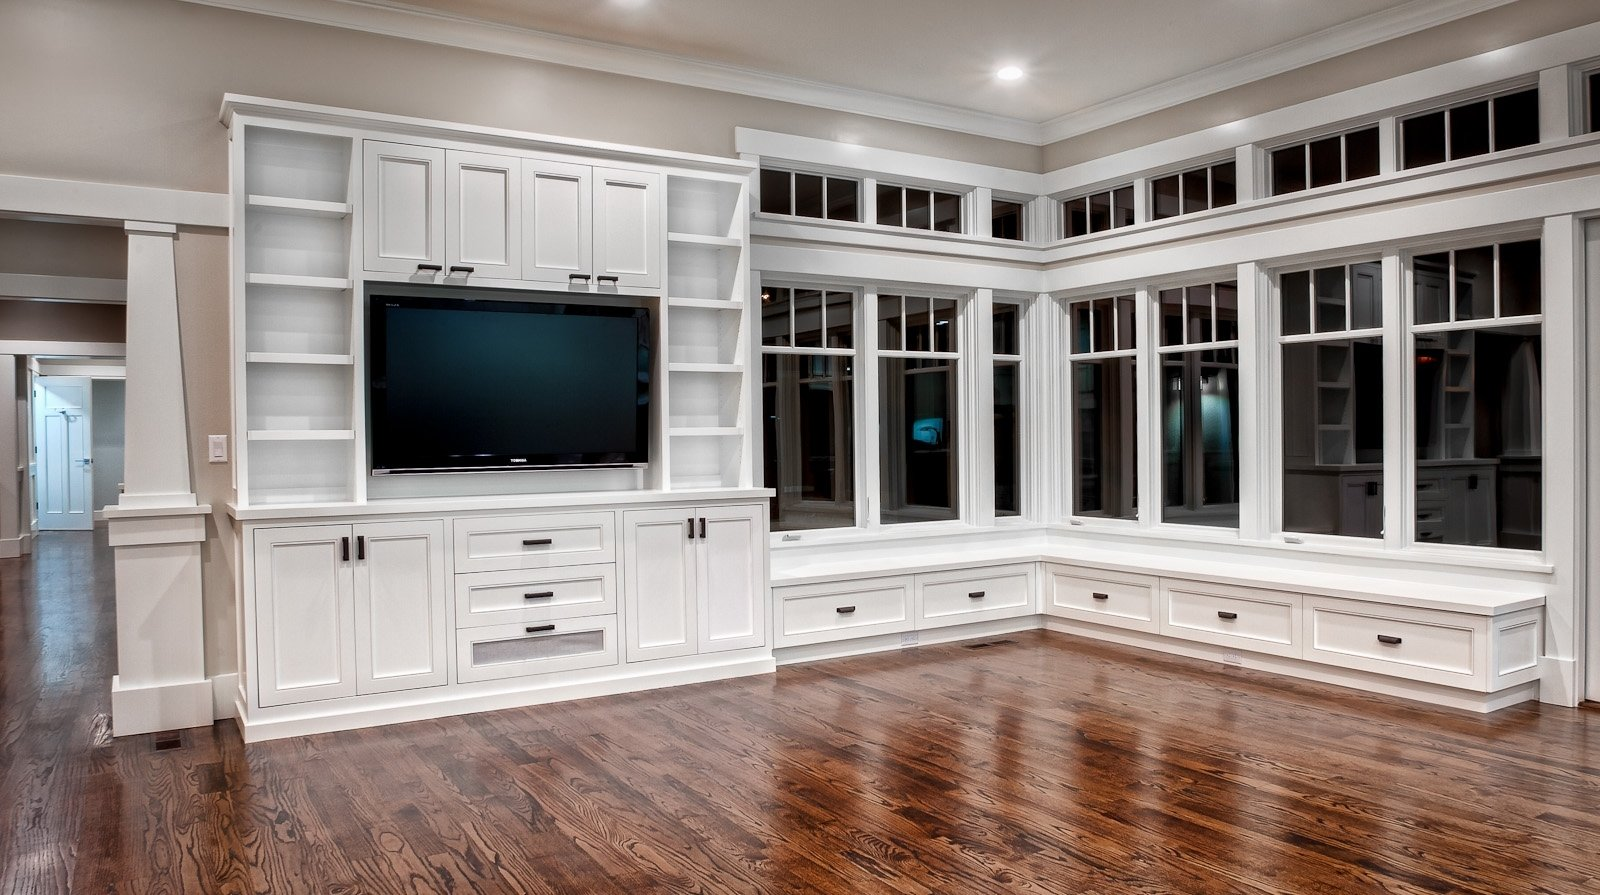 10 Awesome Built In Entertainment Center Ideas traditional entertainment center custom cabinets houston cabinet